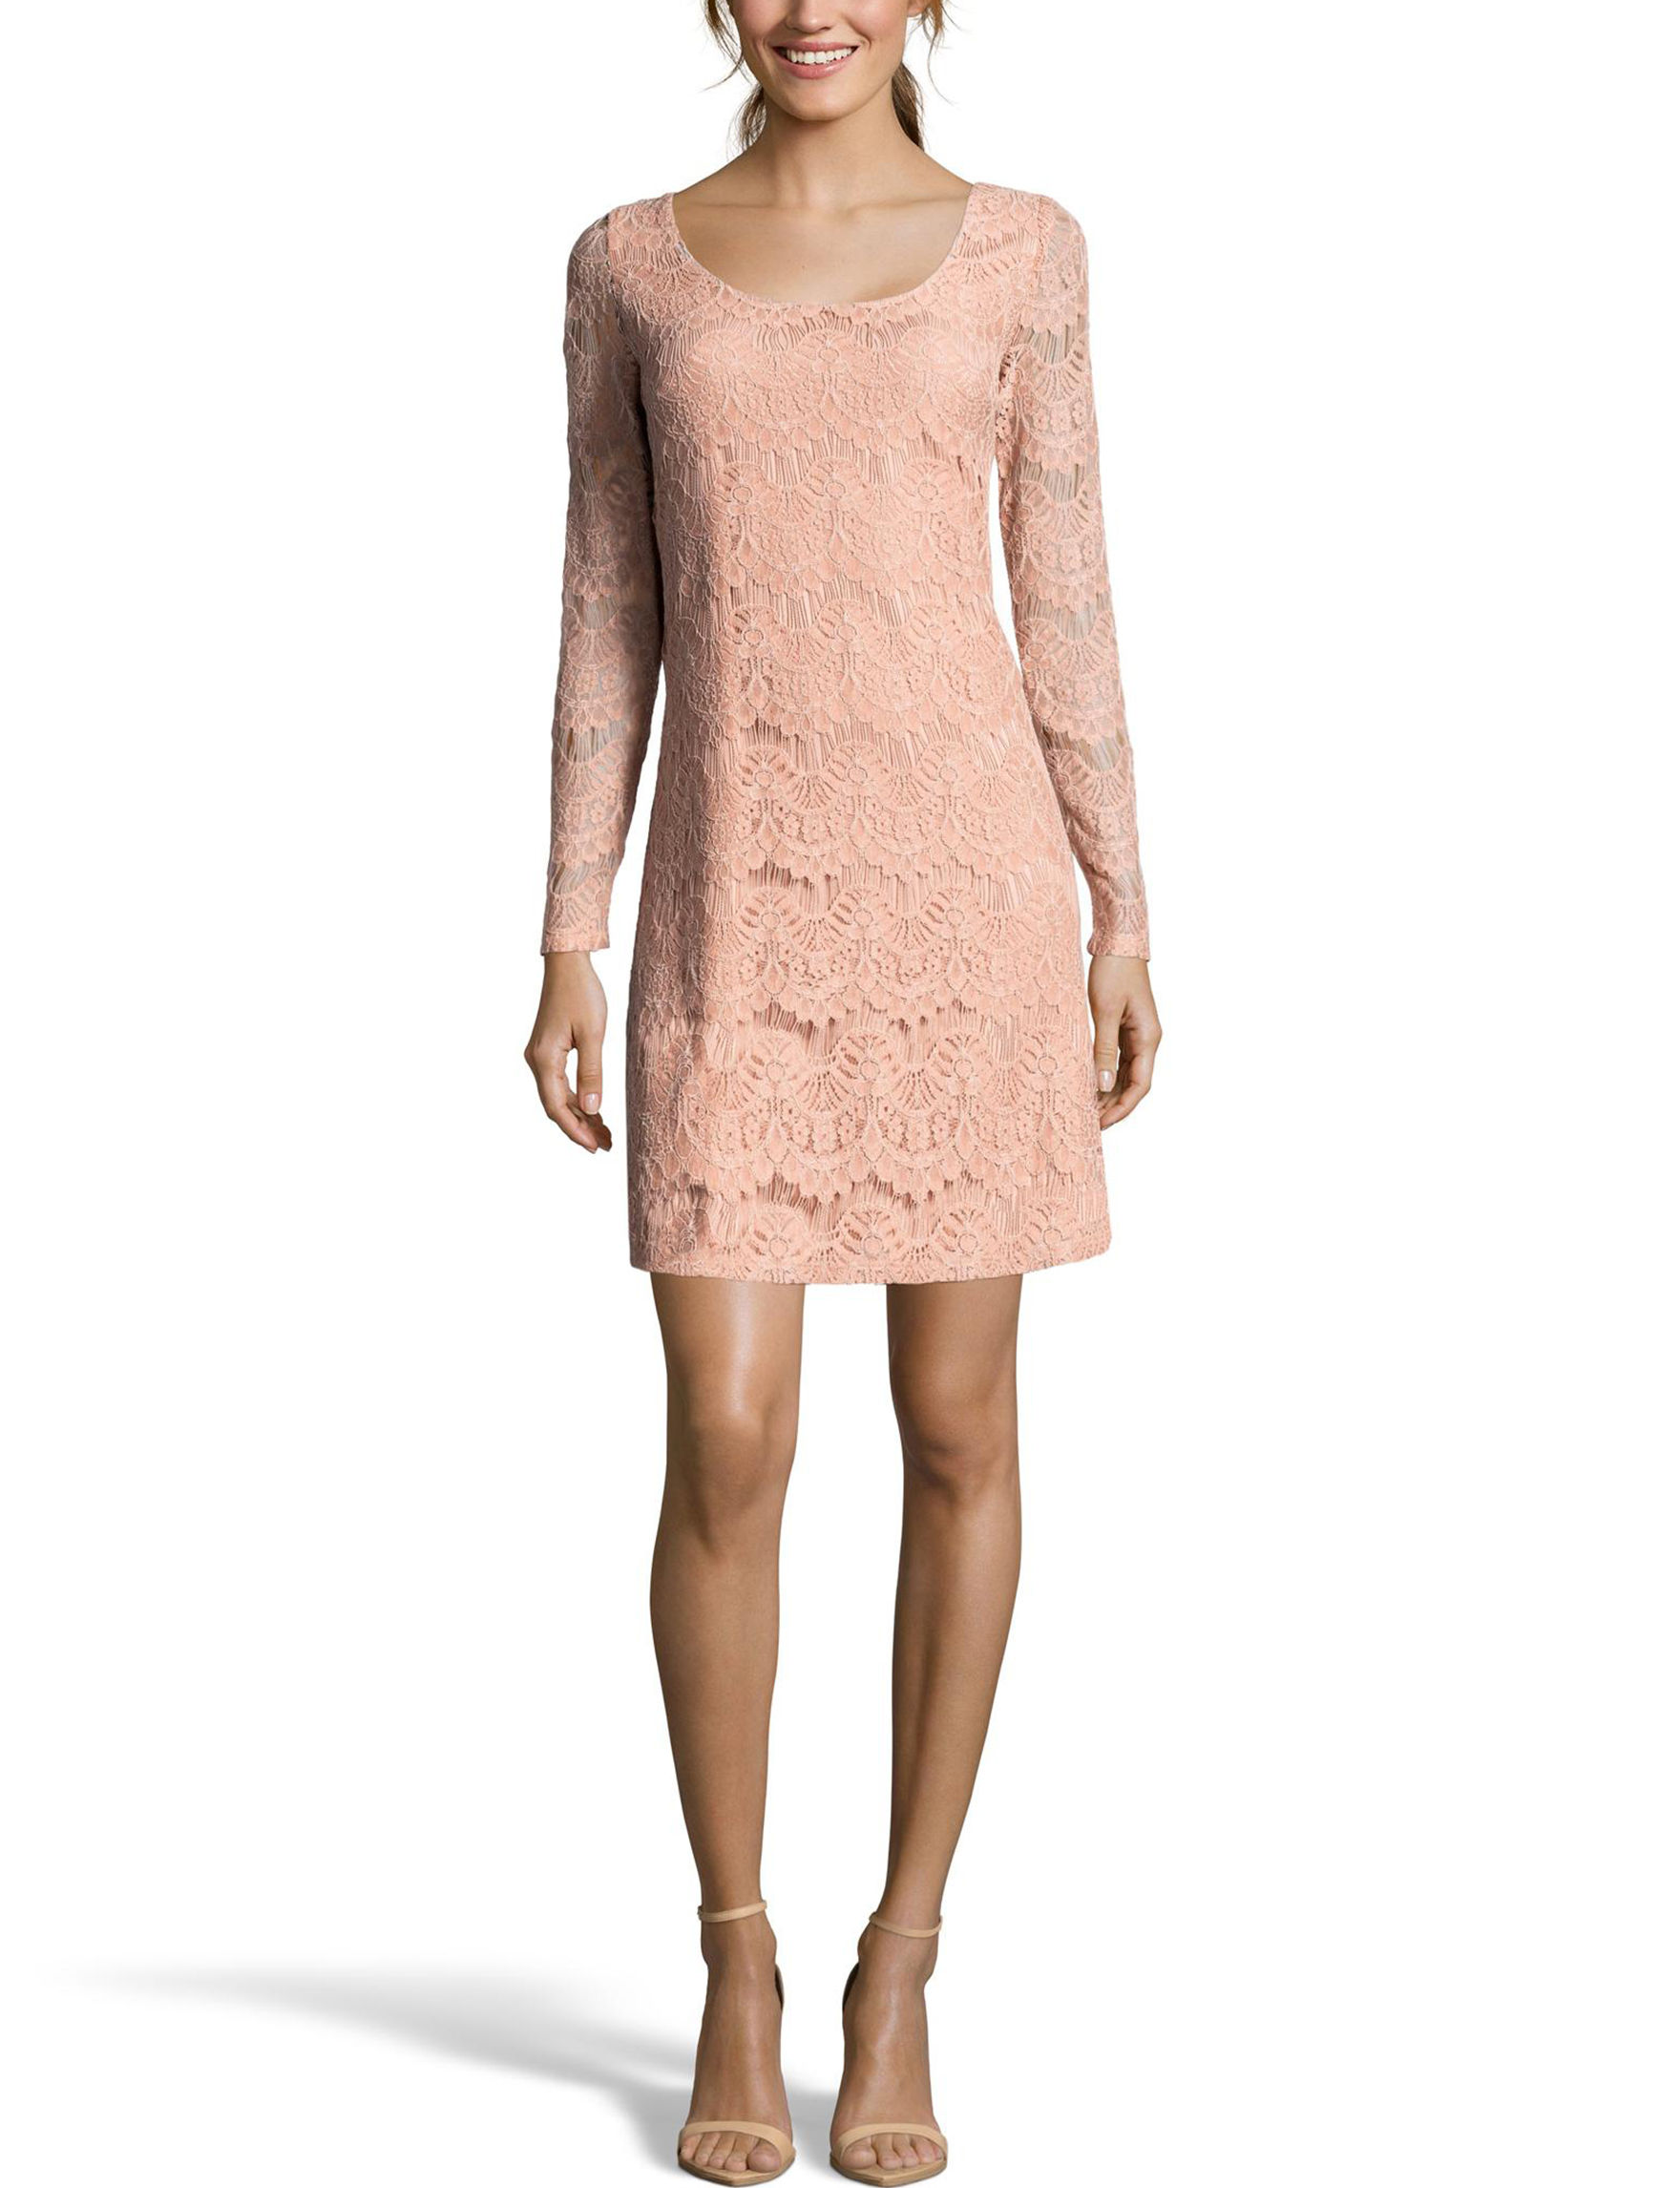 Nicole Miller Pink Everyday & Casual Shift Dresses